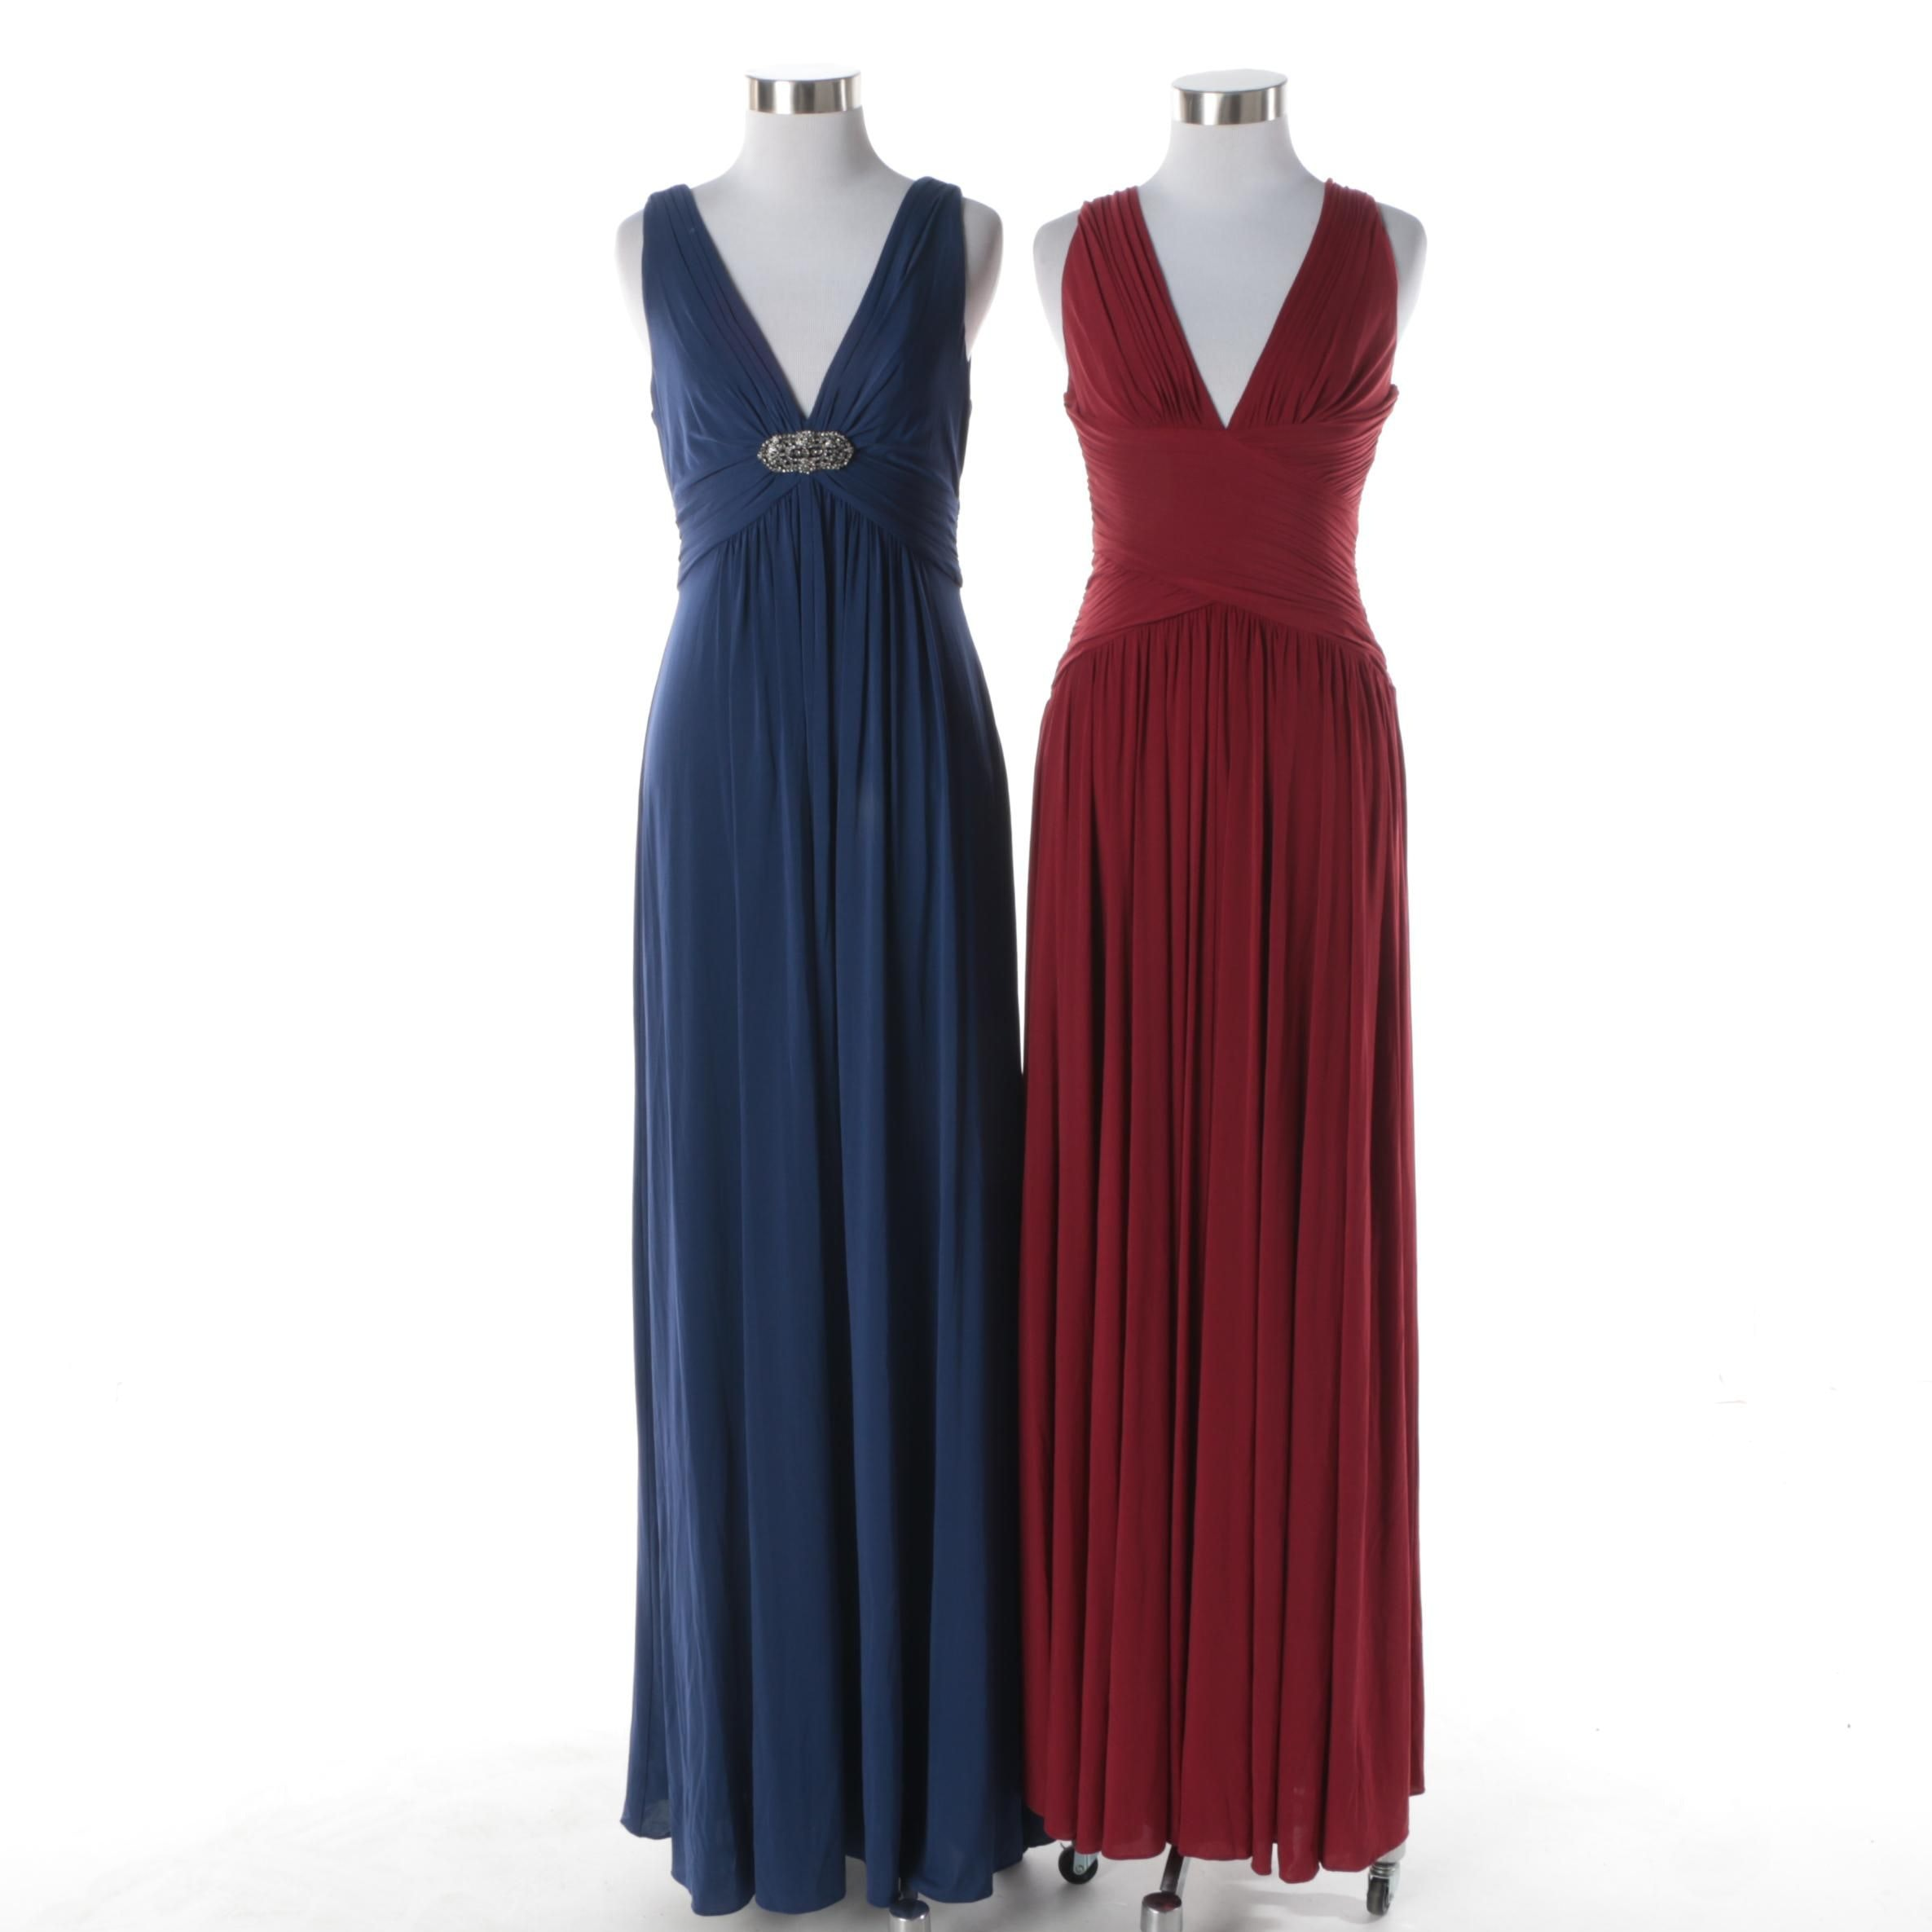 BCBG Max Azria Sleeveless Evening Gowns